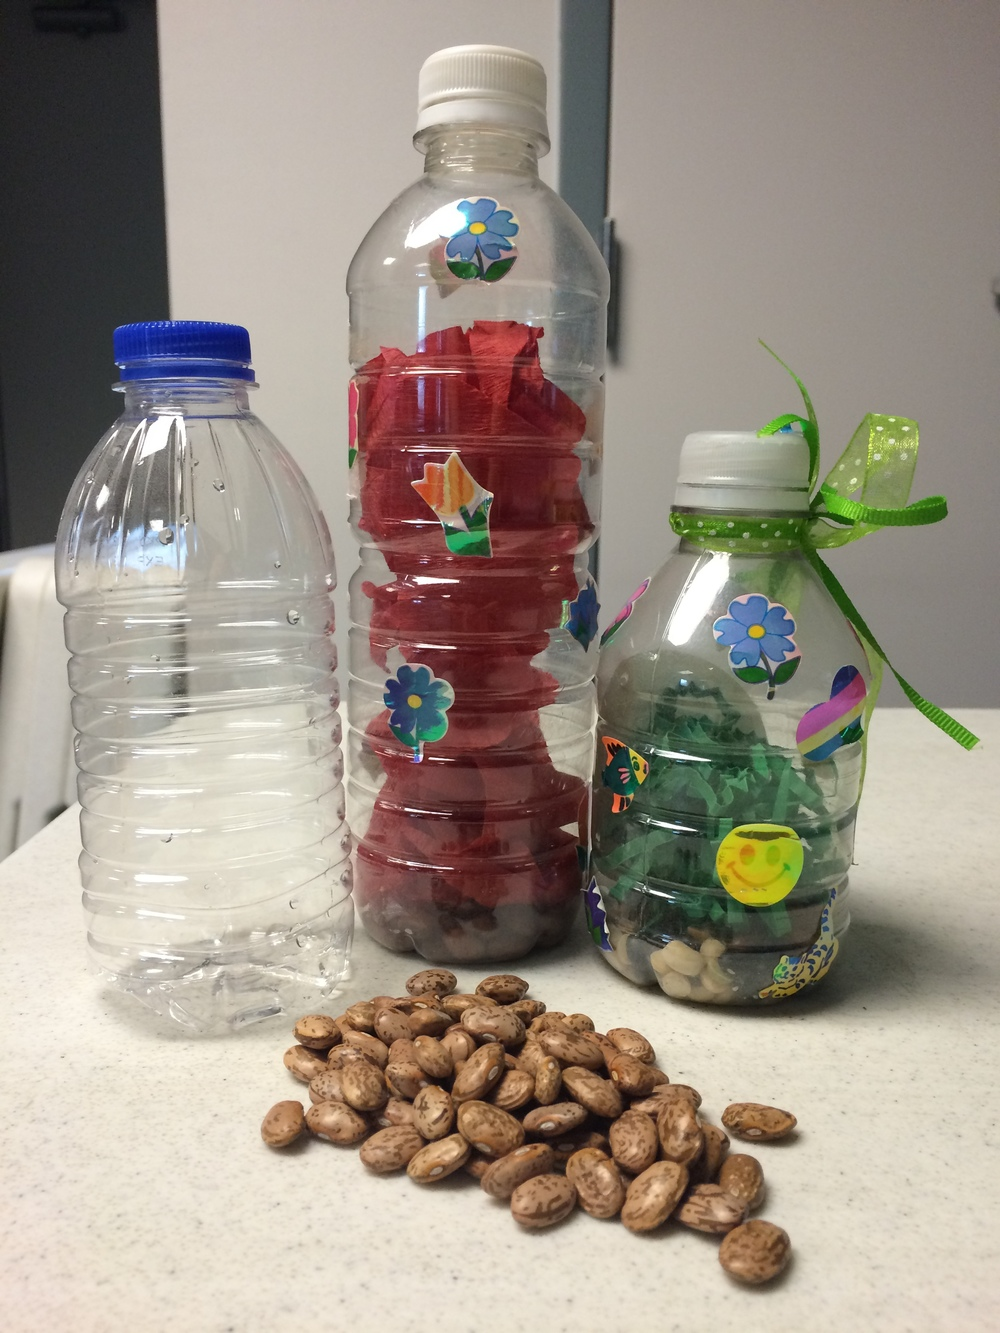 Make your own music shakers or maracas with materials typically found in recycling bins, like the plastic bottles pictured above.